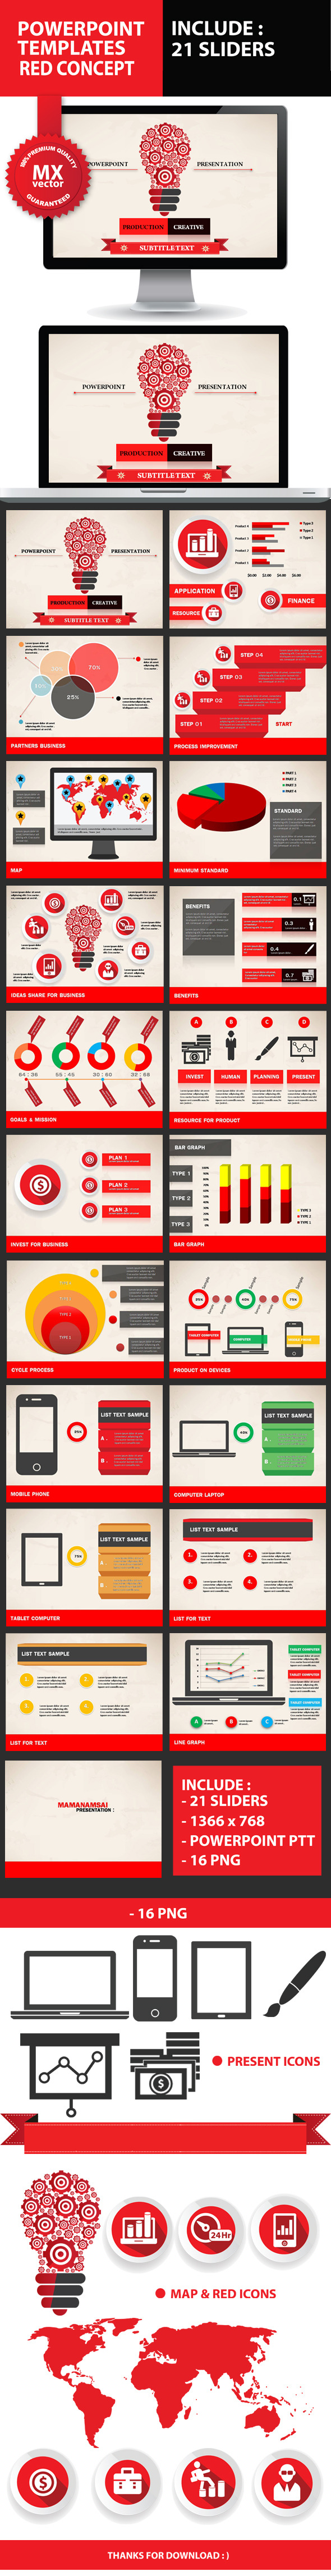 Product Creative Powerpoint Presentation - Creative PowerPoint Templates